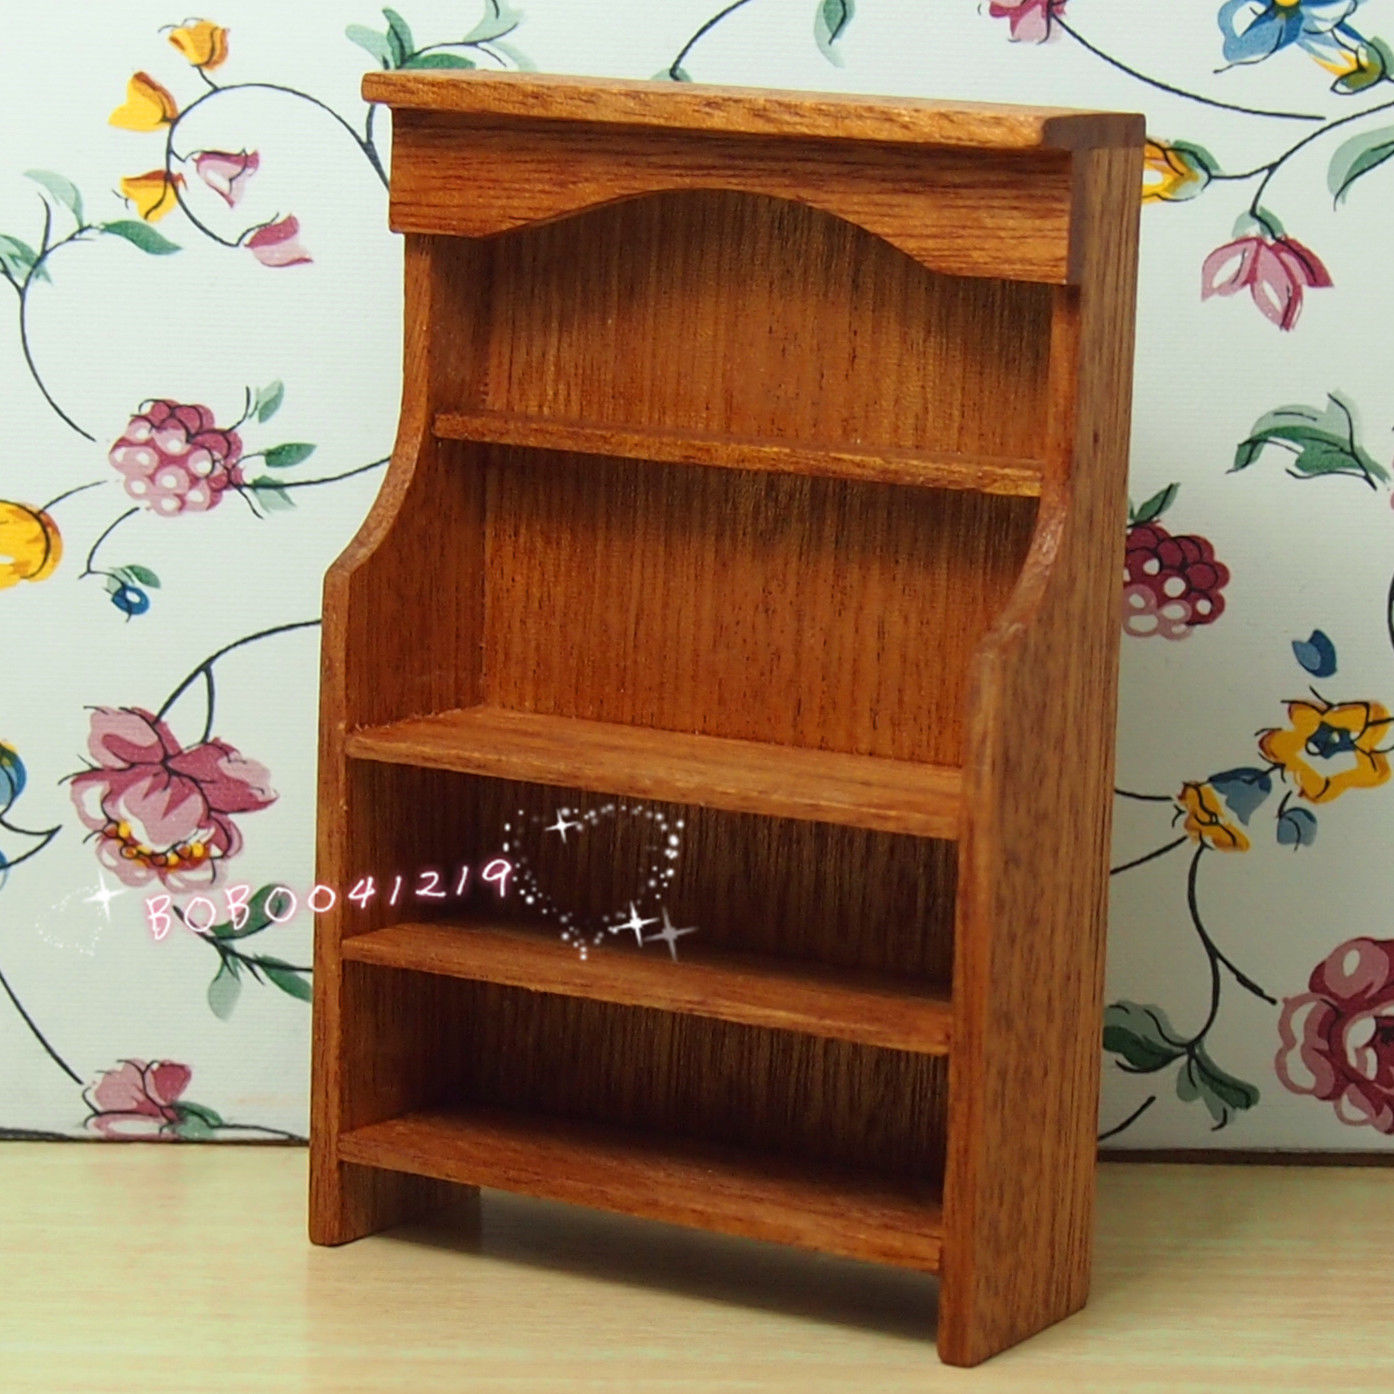 Dollhouse Miniature Kitchen Dining Room Wooden Dresser Height 103cm M34